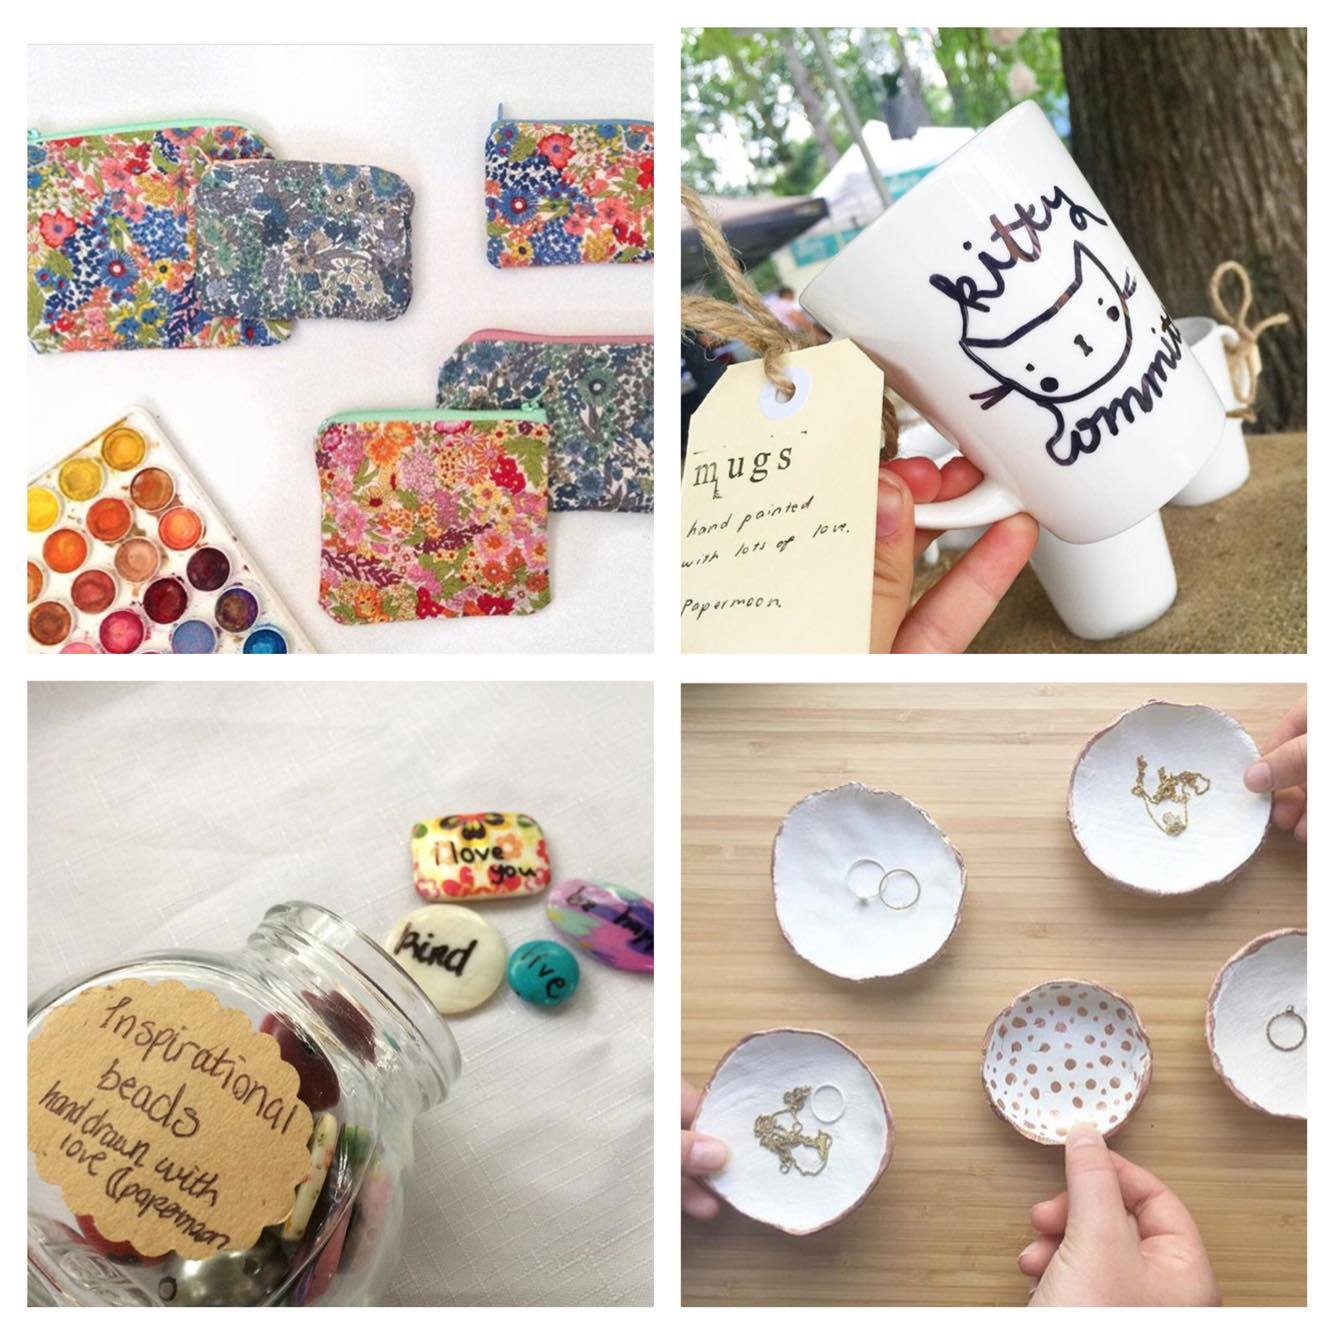 Pop over to Brisbanes Sunday Gap Markets every second week and visit Papermoon Crafts stall and buy some of these cute products! Follow on instagram : @papermoon.crafts